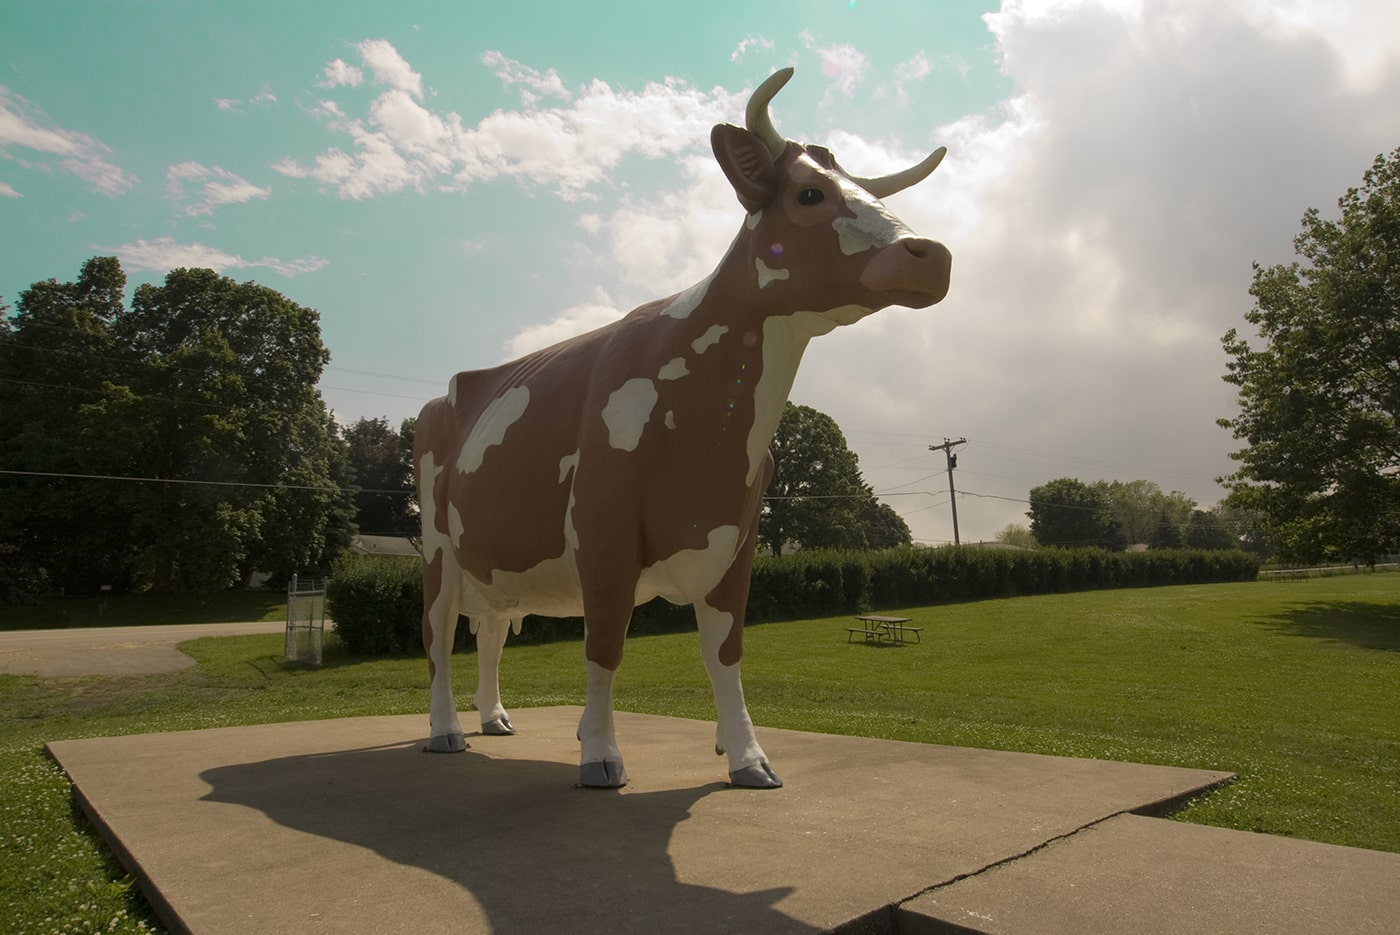 Giant cow in Rockford, Illinois.